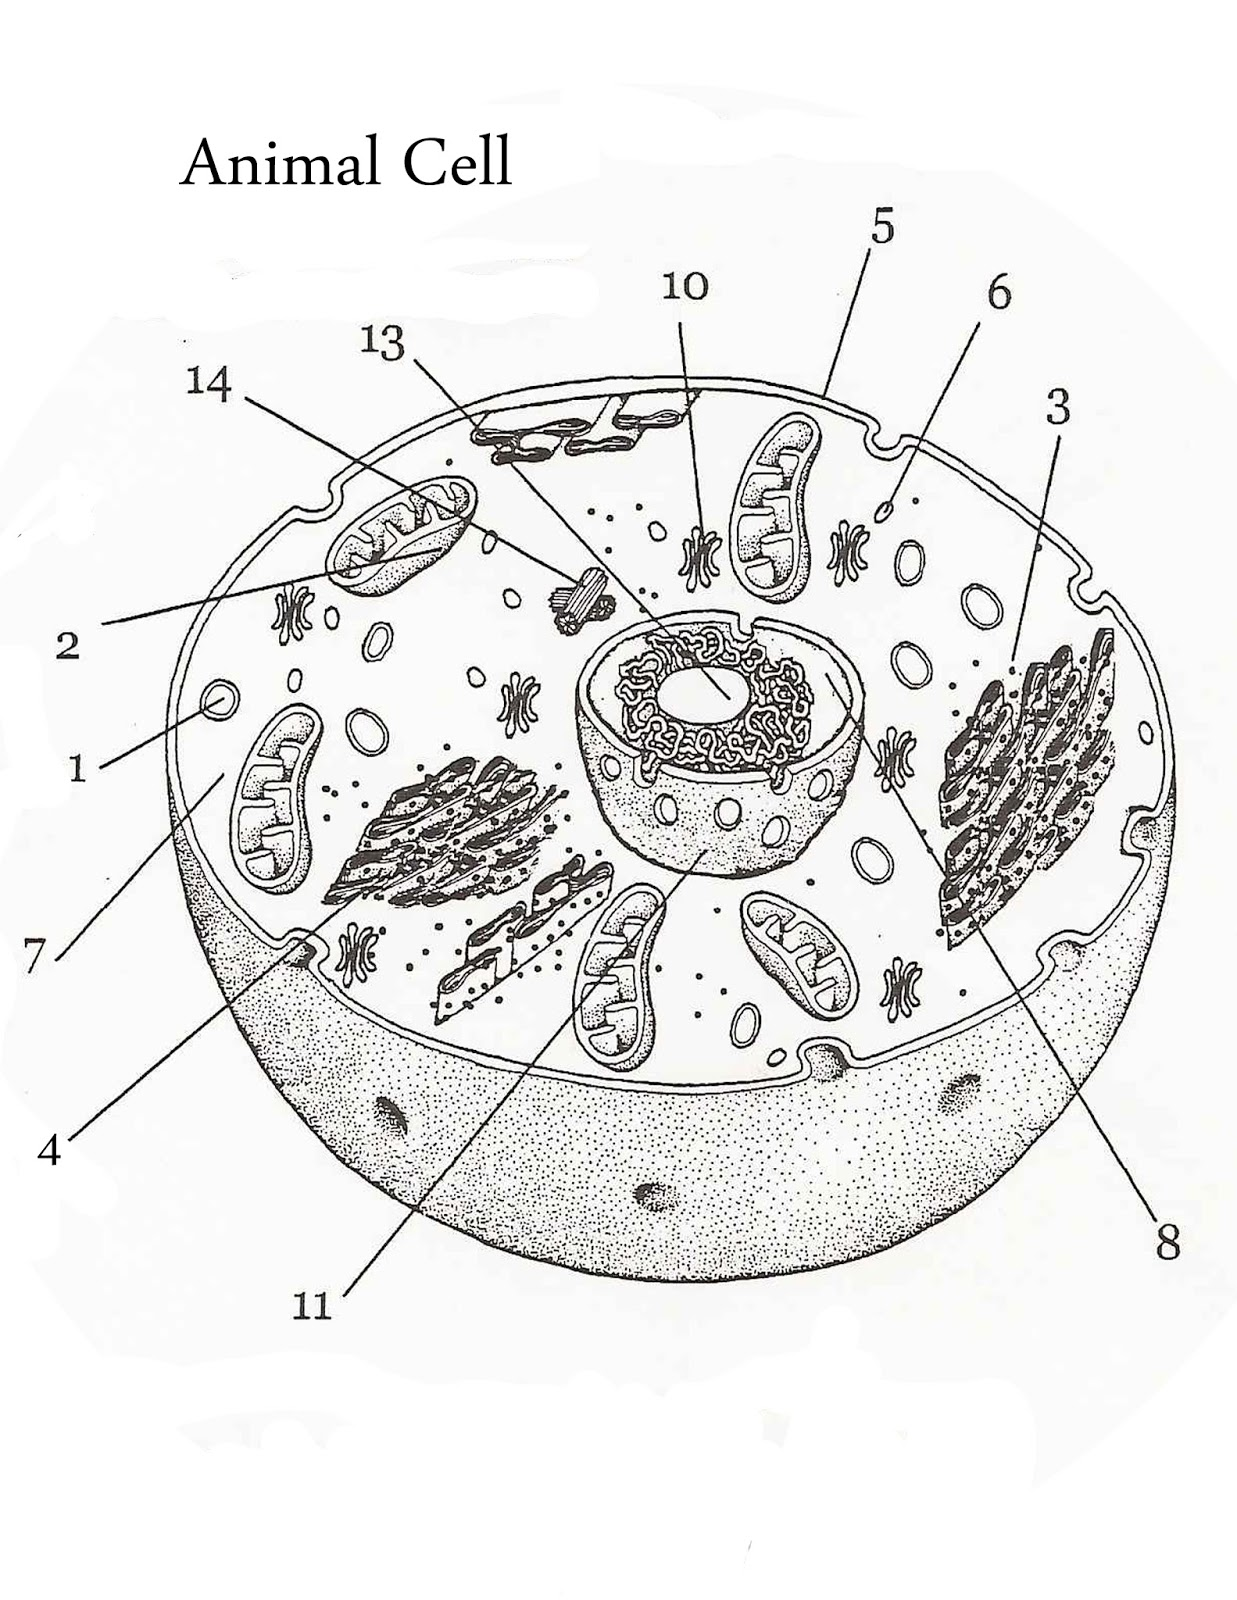 Animal Cell Diagram Unlabeled